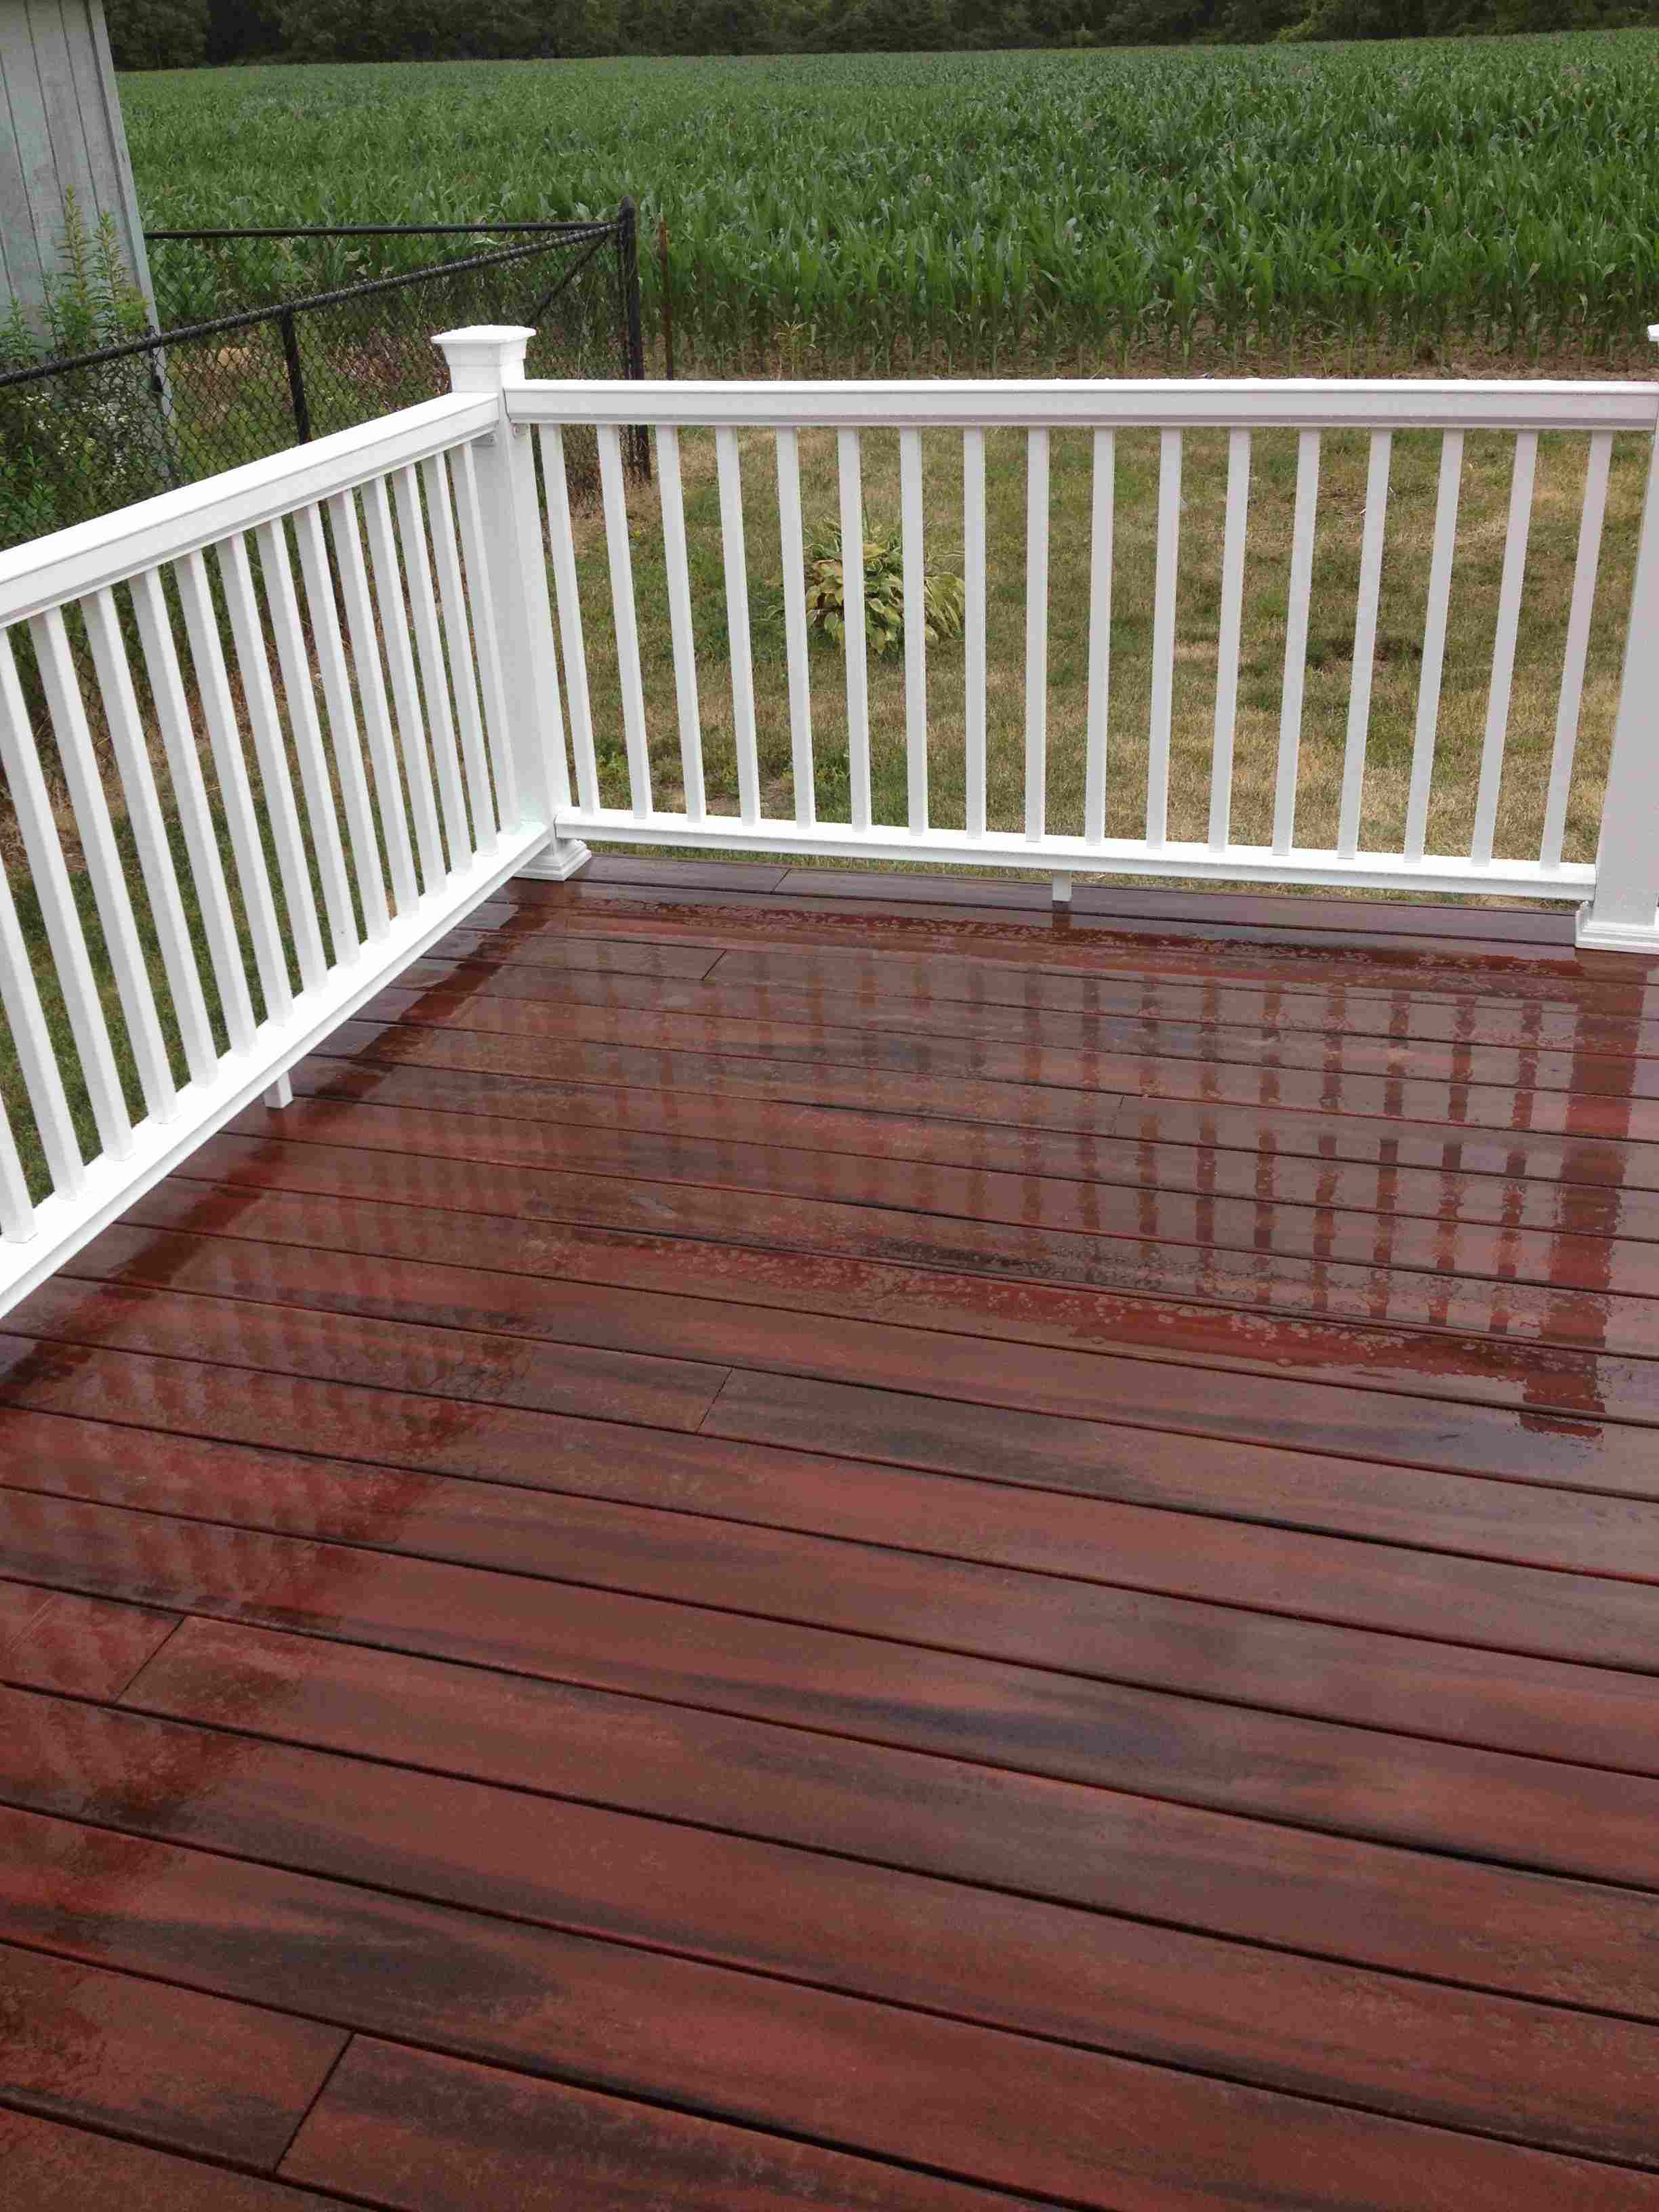 Decks exterior arts llc michiana 39 s exterior design for Composite deck railing